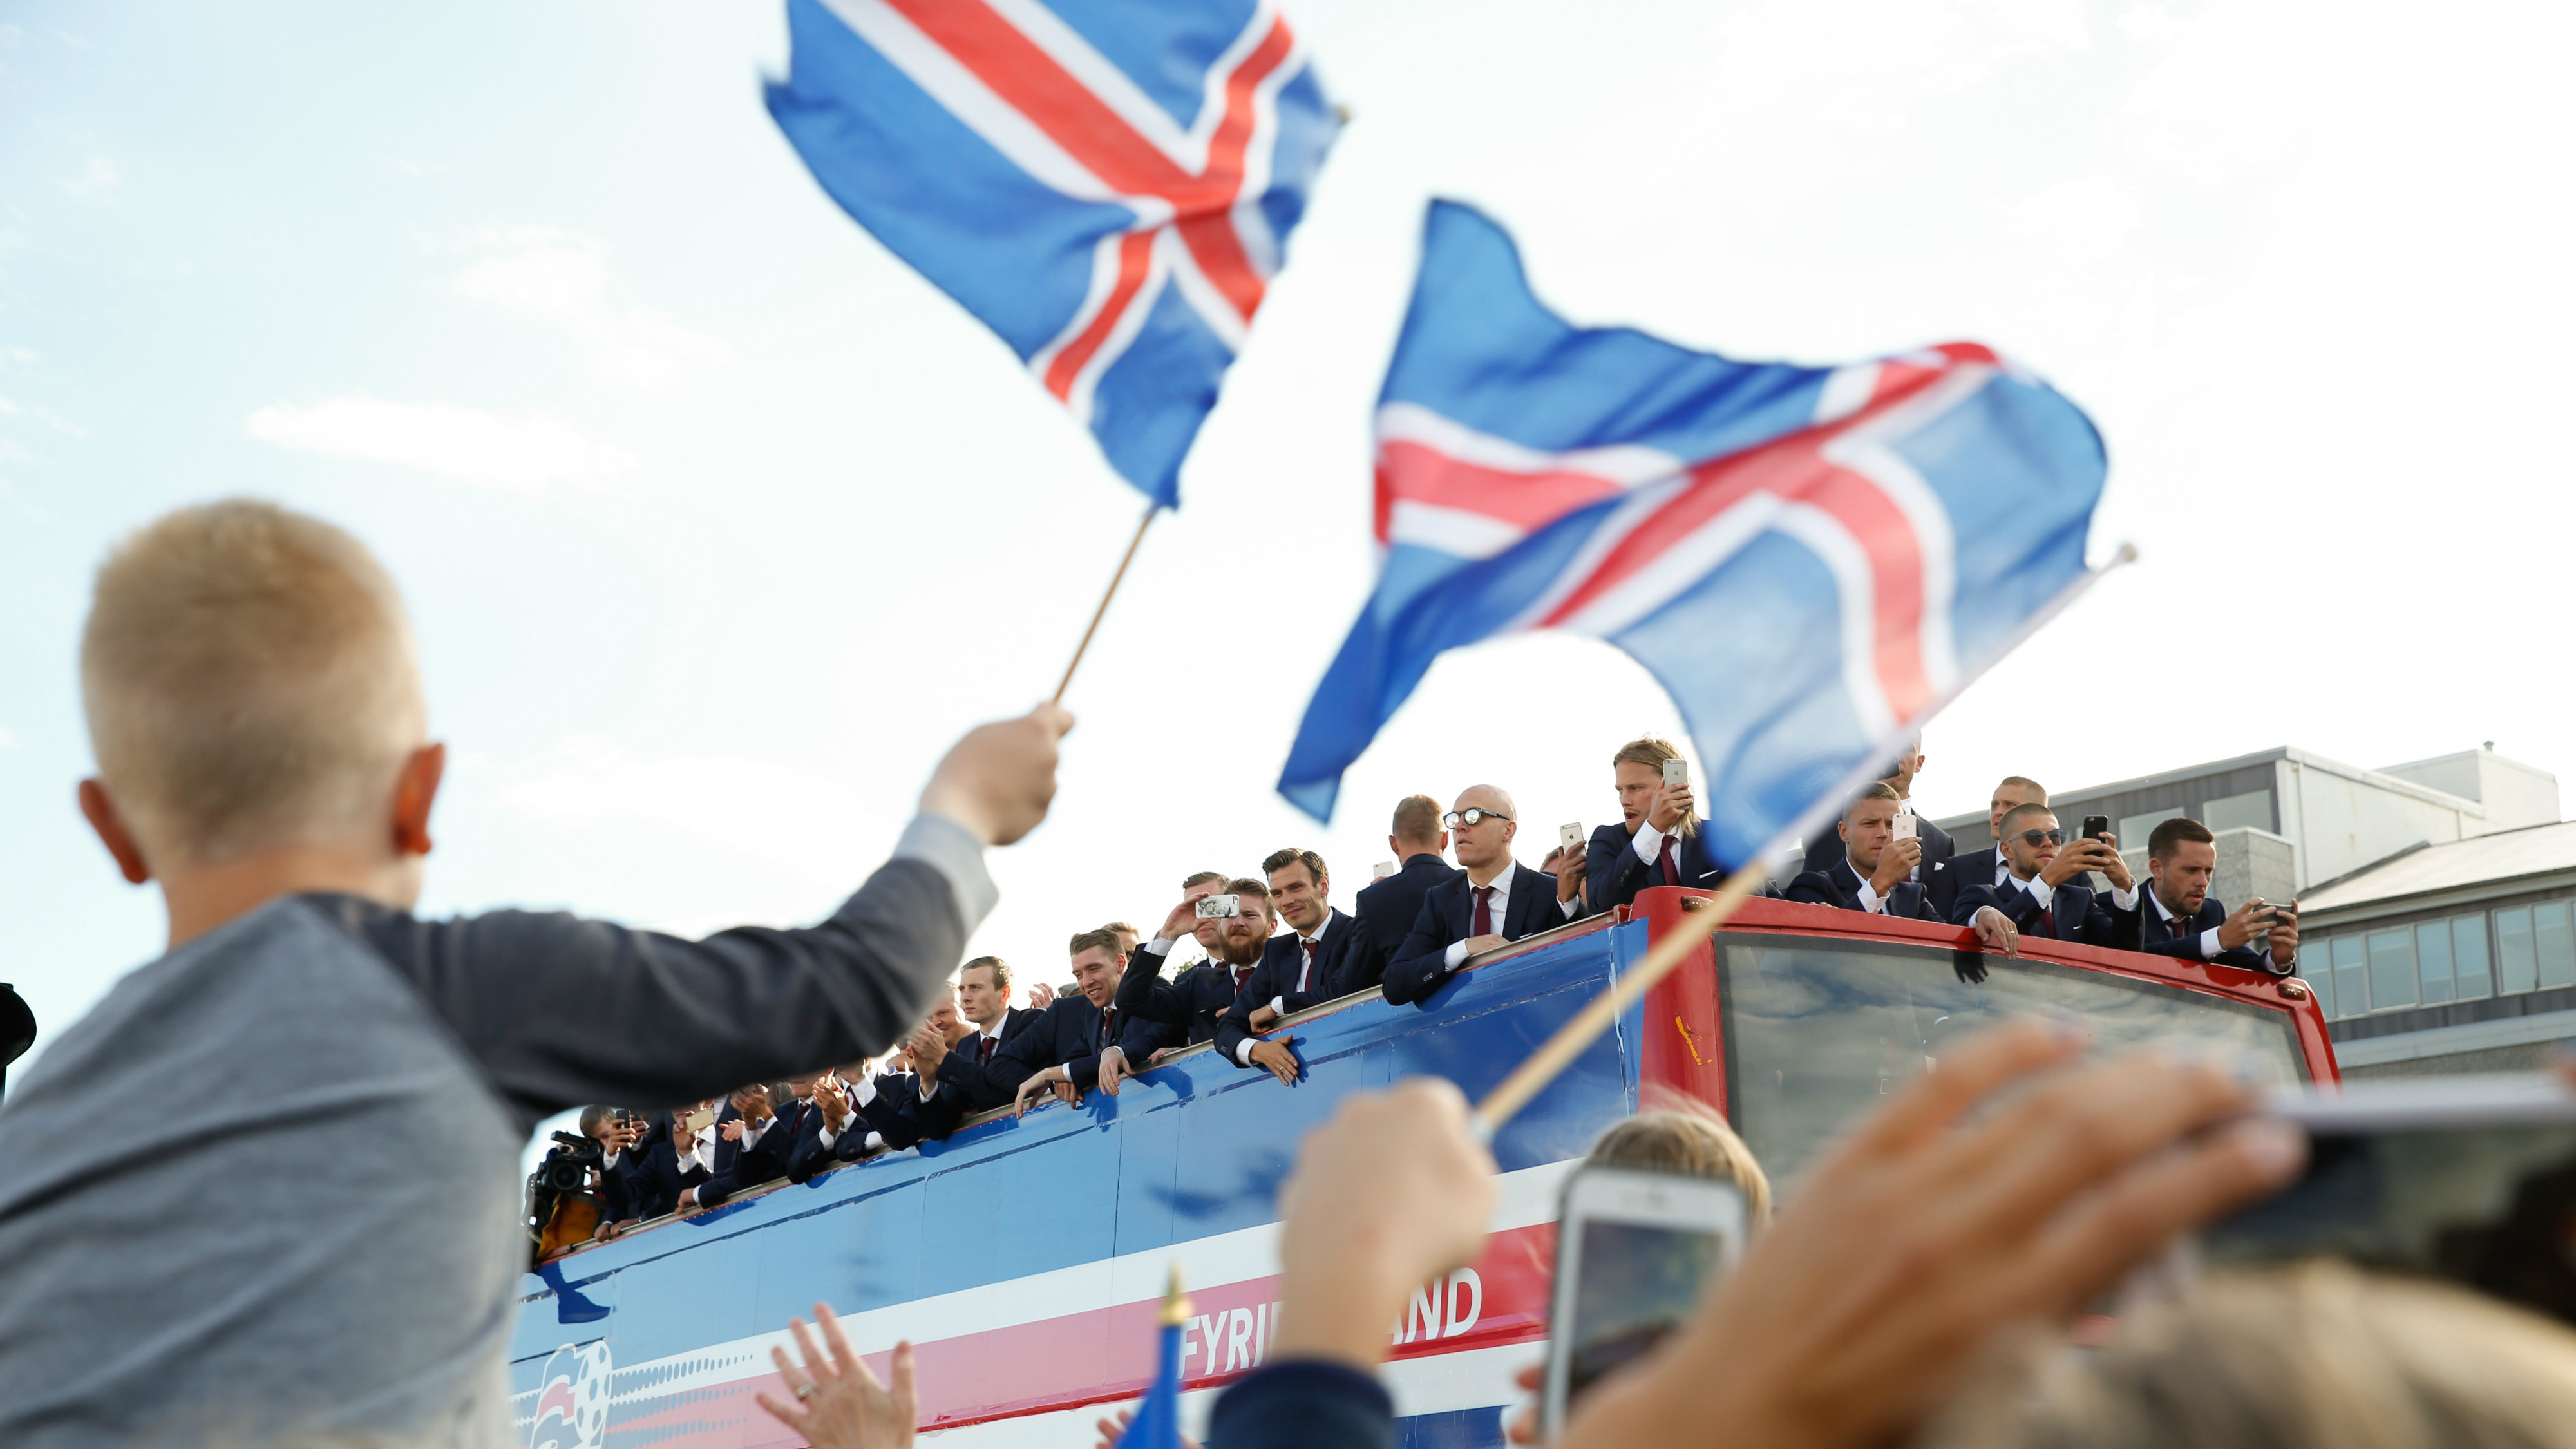 Icelandic soccer fans celebrate as their national team comes home to a hero's welcome from the Euro 2016 soccer championships in Reykjavik, Iceland, Monday July 4, 2016.